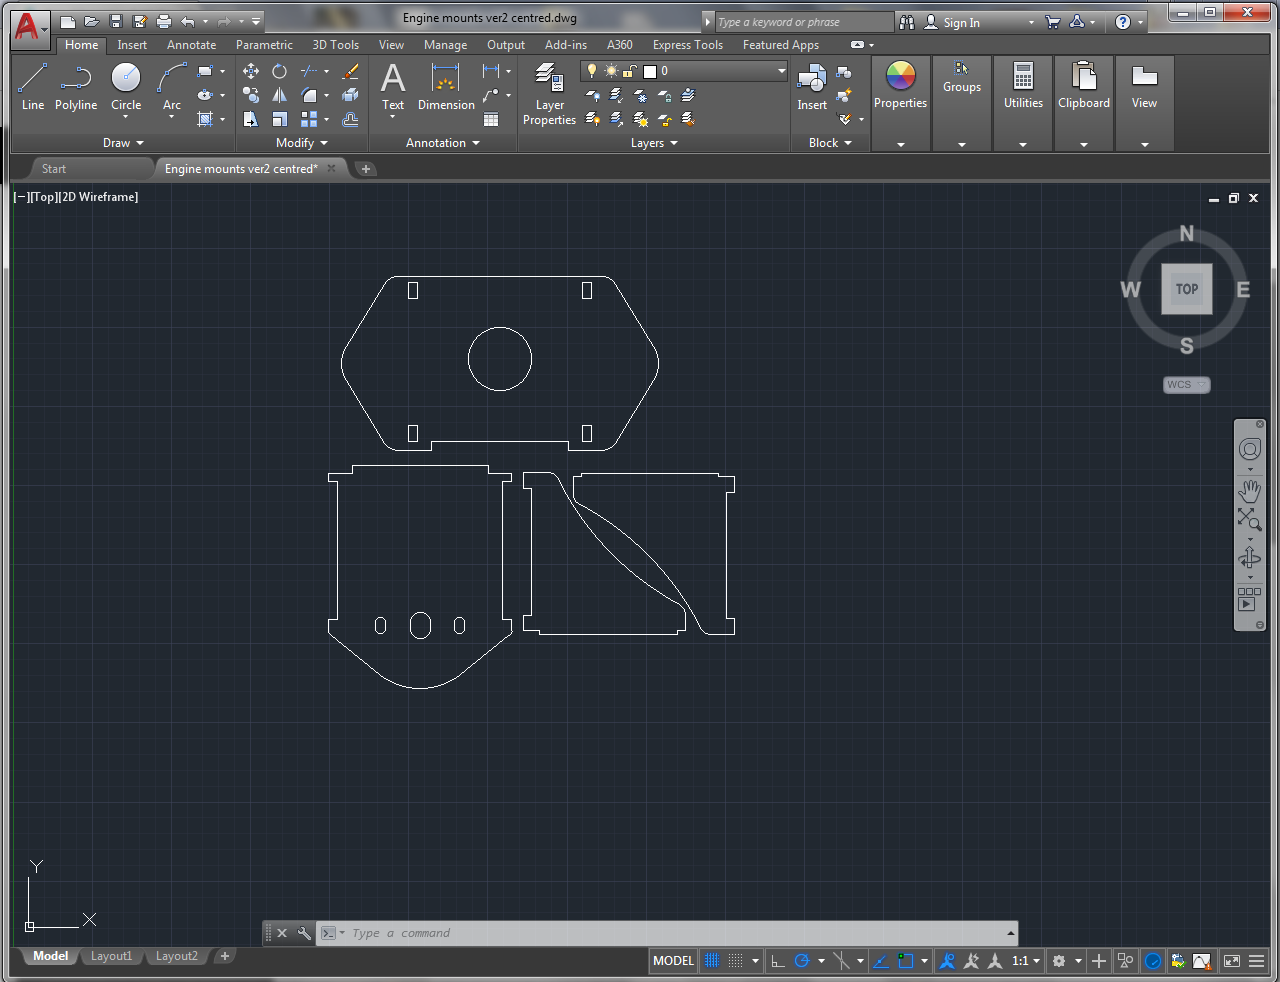 Joining lines of a shape (for laser cutting) - Autodesk Community